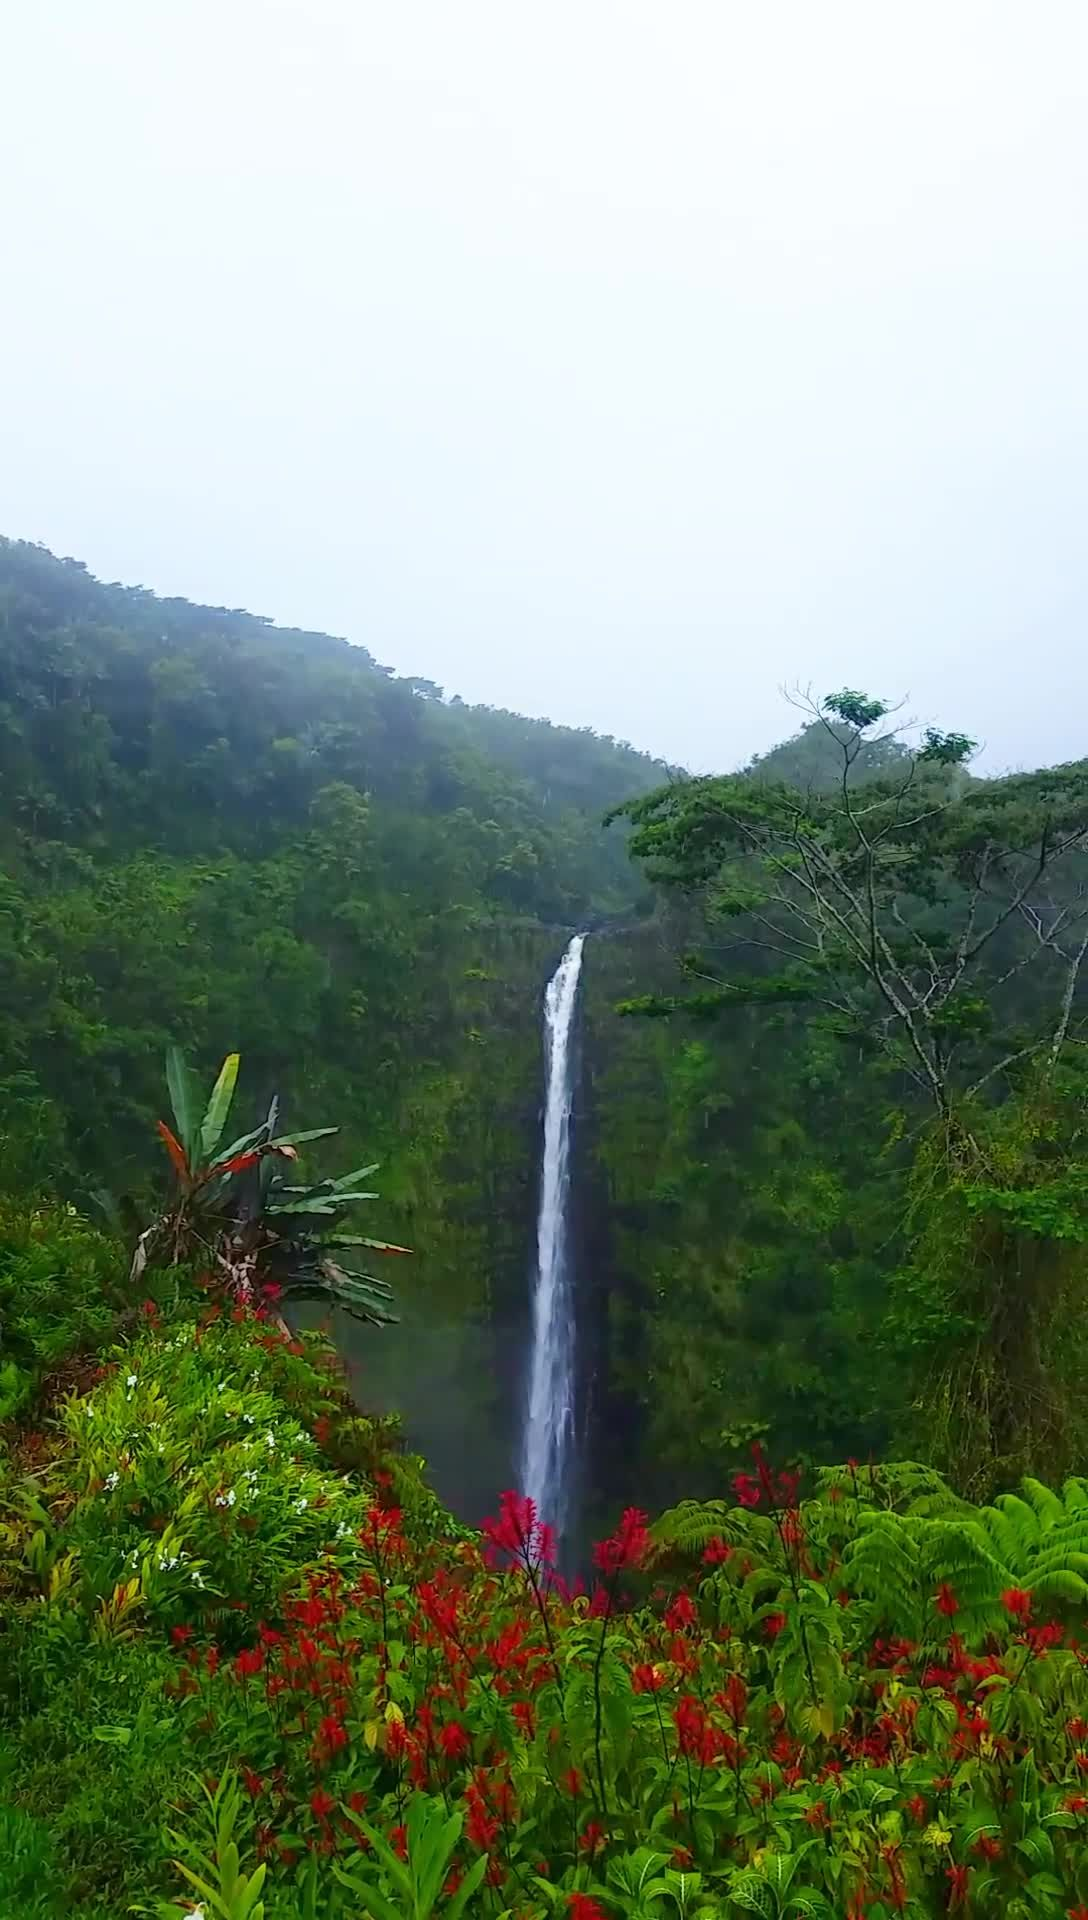 Travel Hawaii video, vacations ideas. Akaka Falls. best waterfall hikes in Hawaii. best things to do in Big Island, near hilo or day trip from kona. state park on big island waterfall hiking trail. Outdoor travel tips. beautiful places for world bucket list, wanderlust inspiration, tropical islands, pictures, photography. waterfalls in the US. usa. united states. #flashpackingamerica